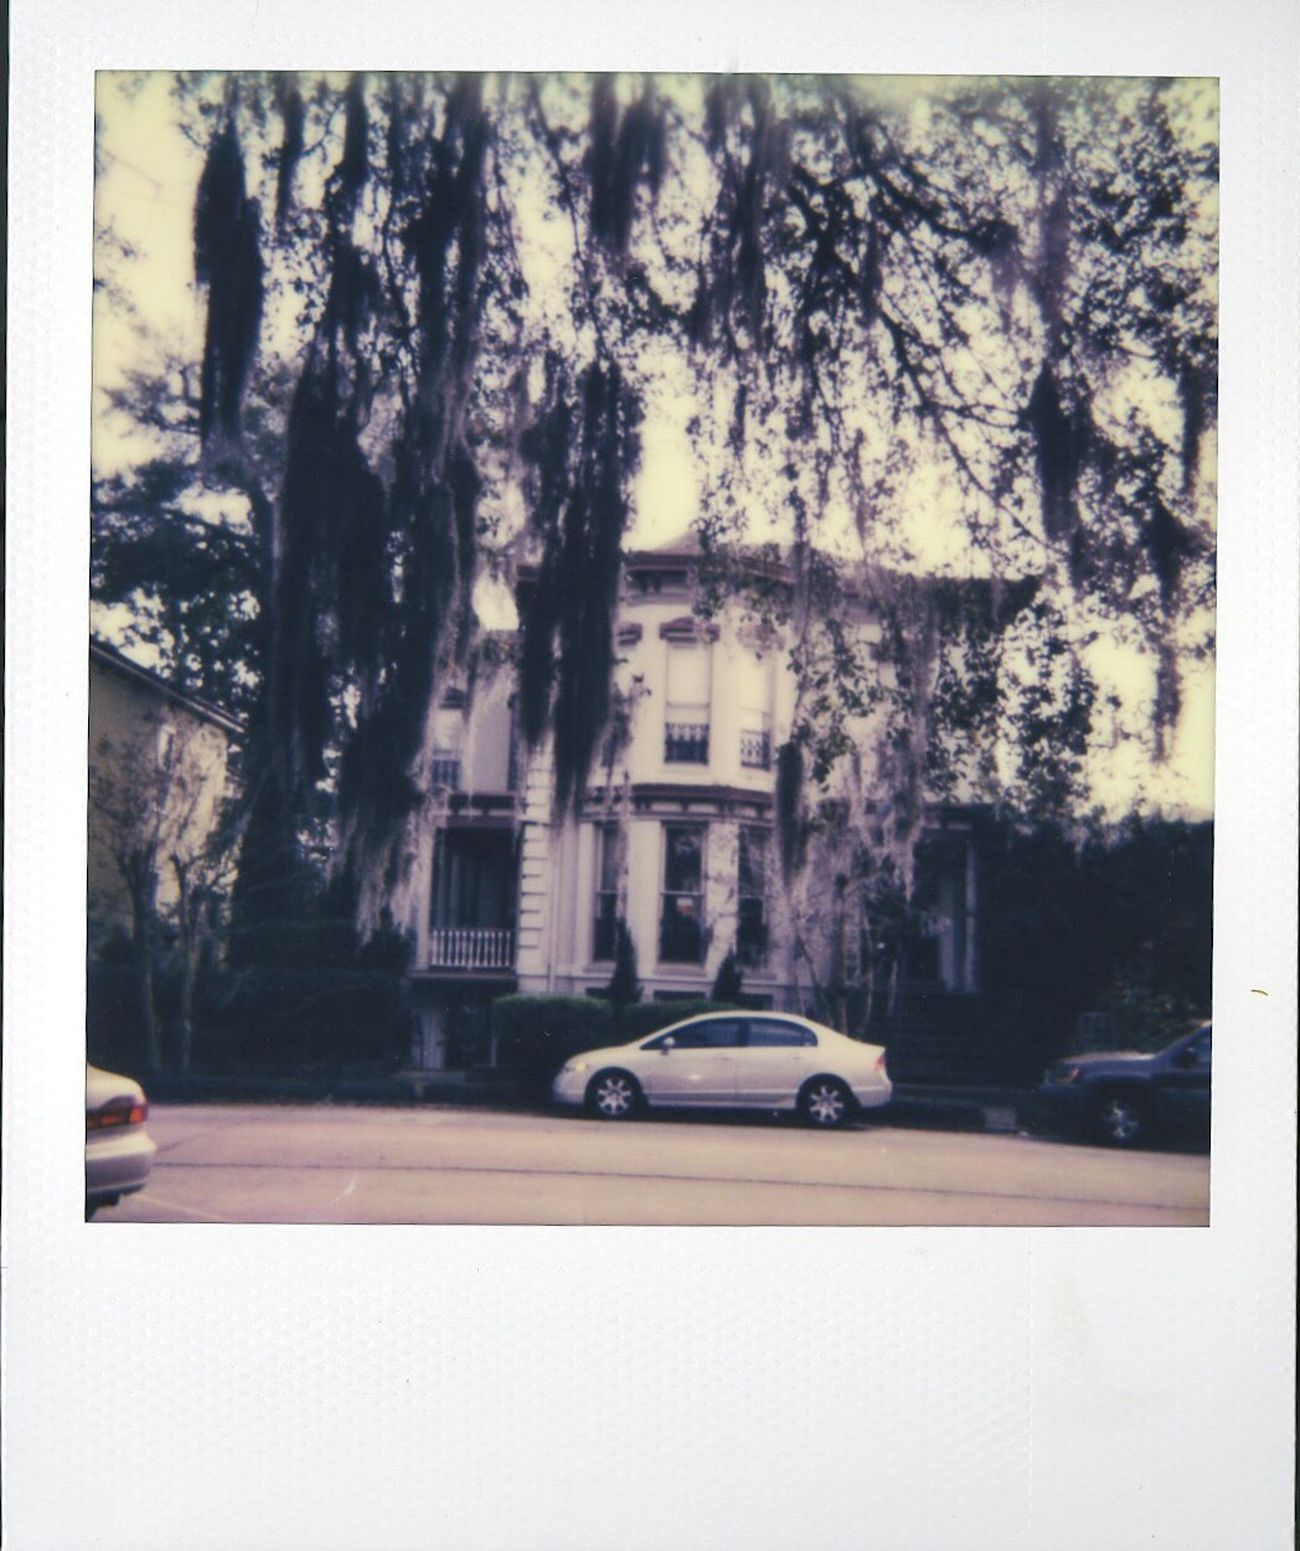 love my car portrait series😍 Polaroid Photographer Polaroid Photography Polaroid 600 Polaroid Forsyth Park Historic Savannah Georgia